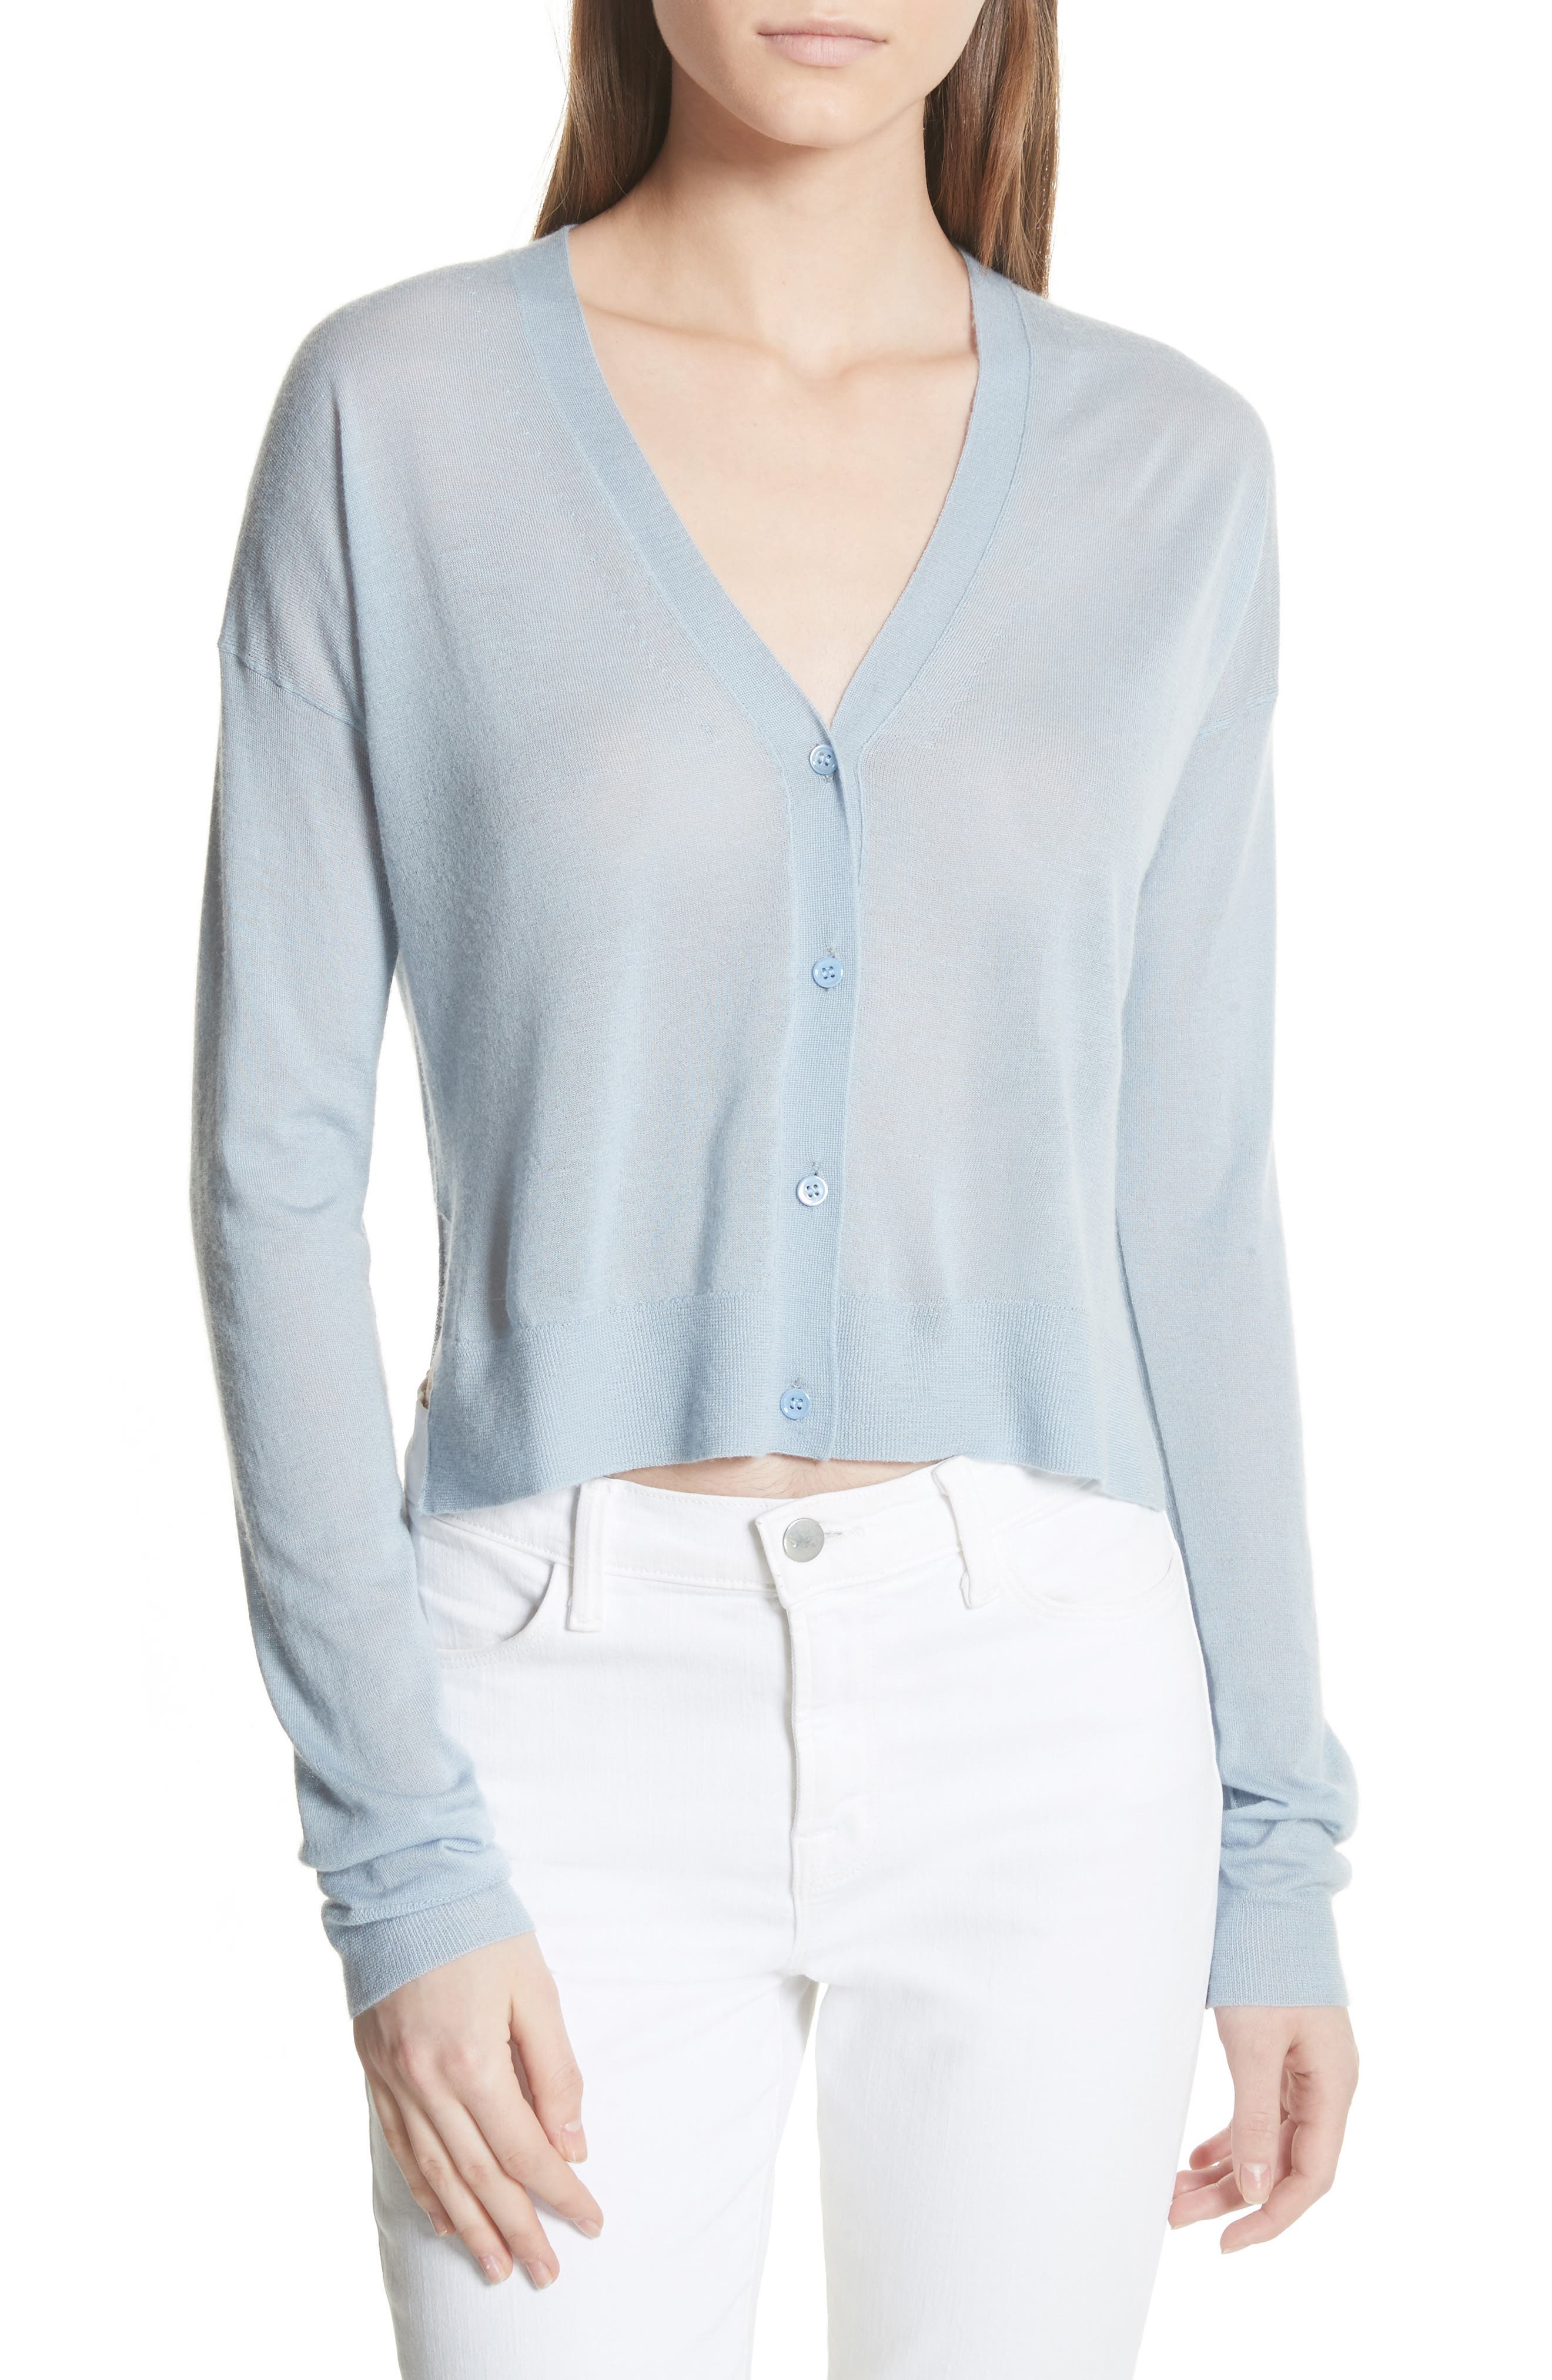 Hanelee Featherweight Cashmere Cardigan,                         Main,                         color,